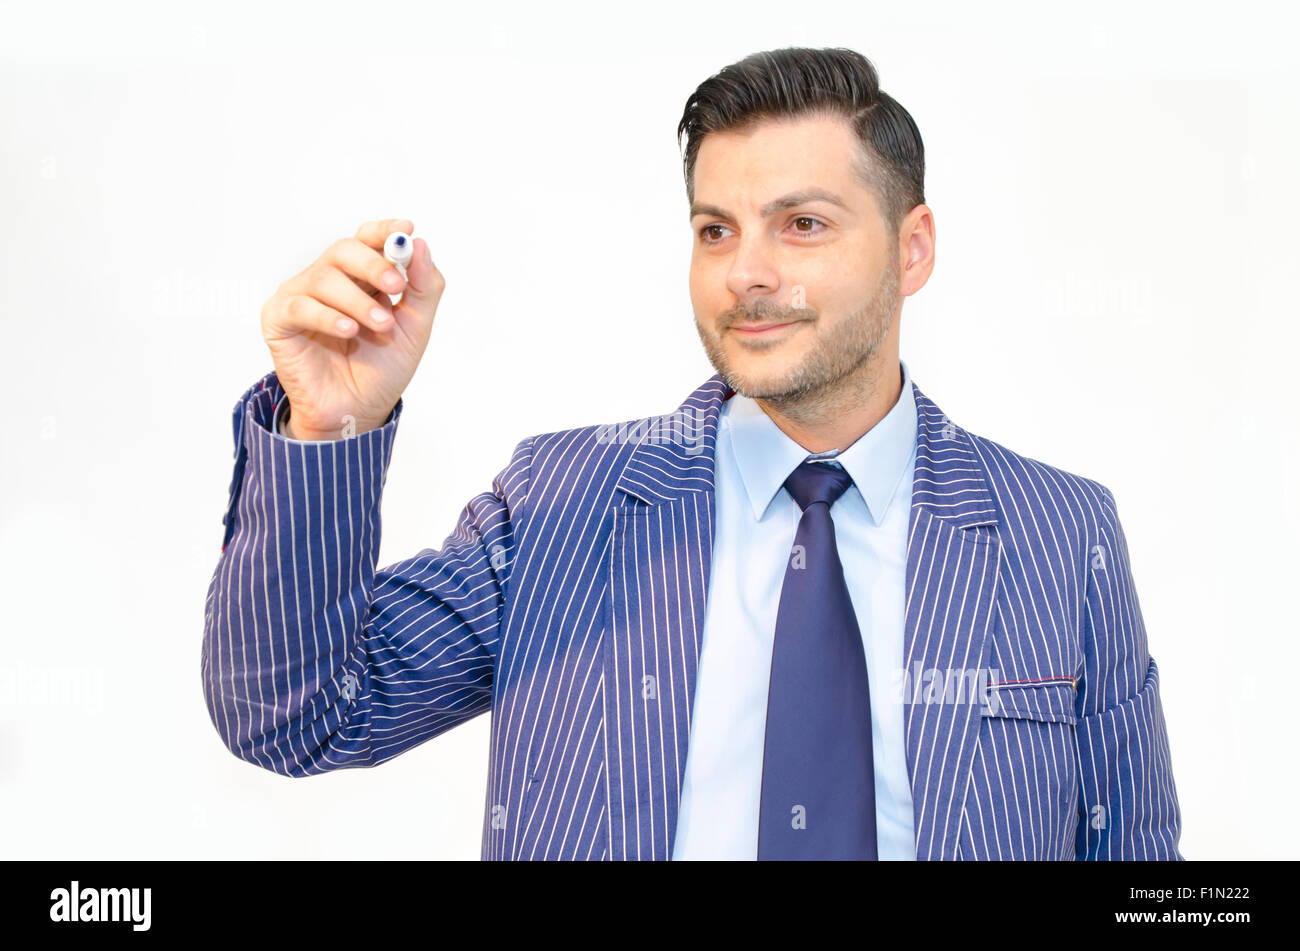 Business man writing with marker islated on white background - Stock Image